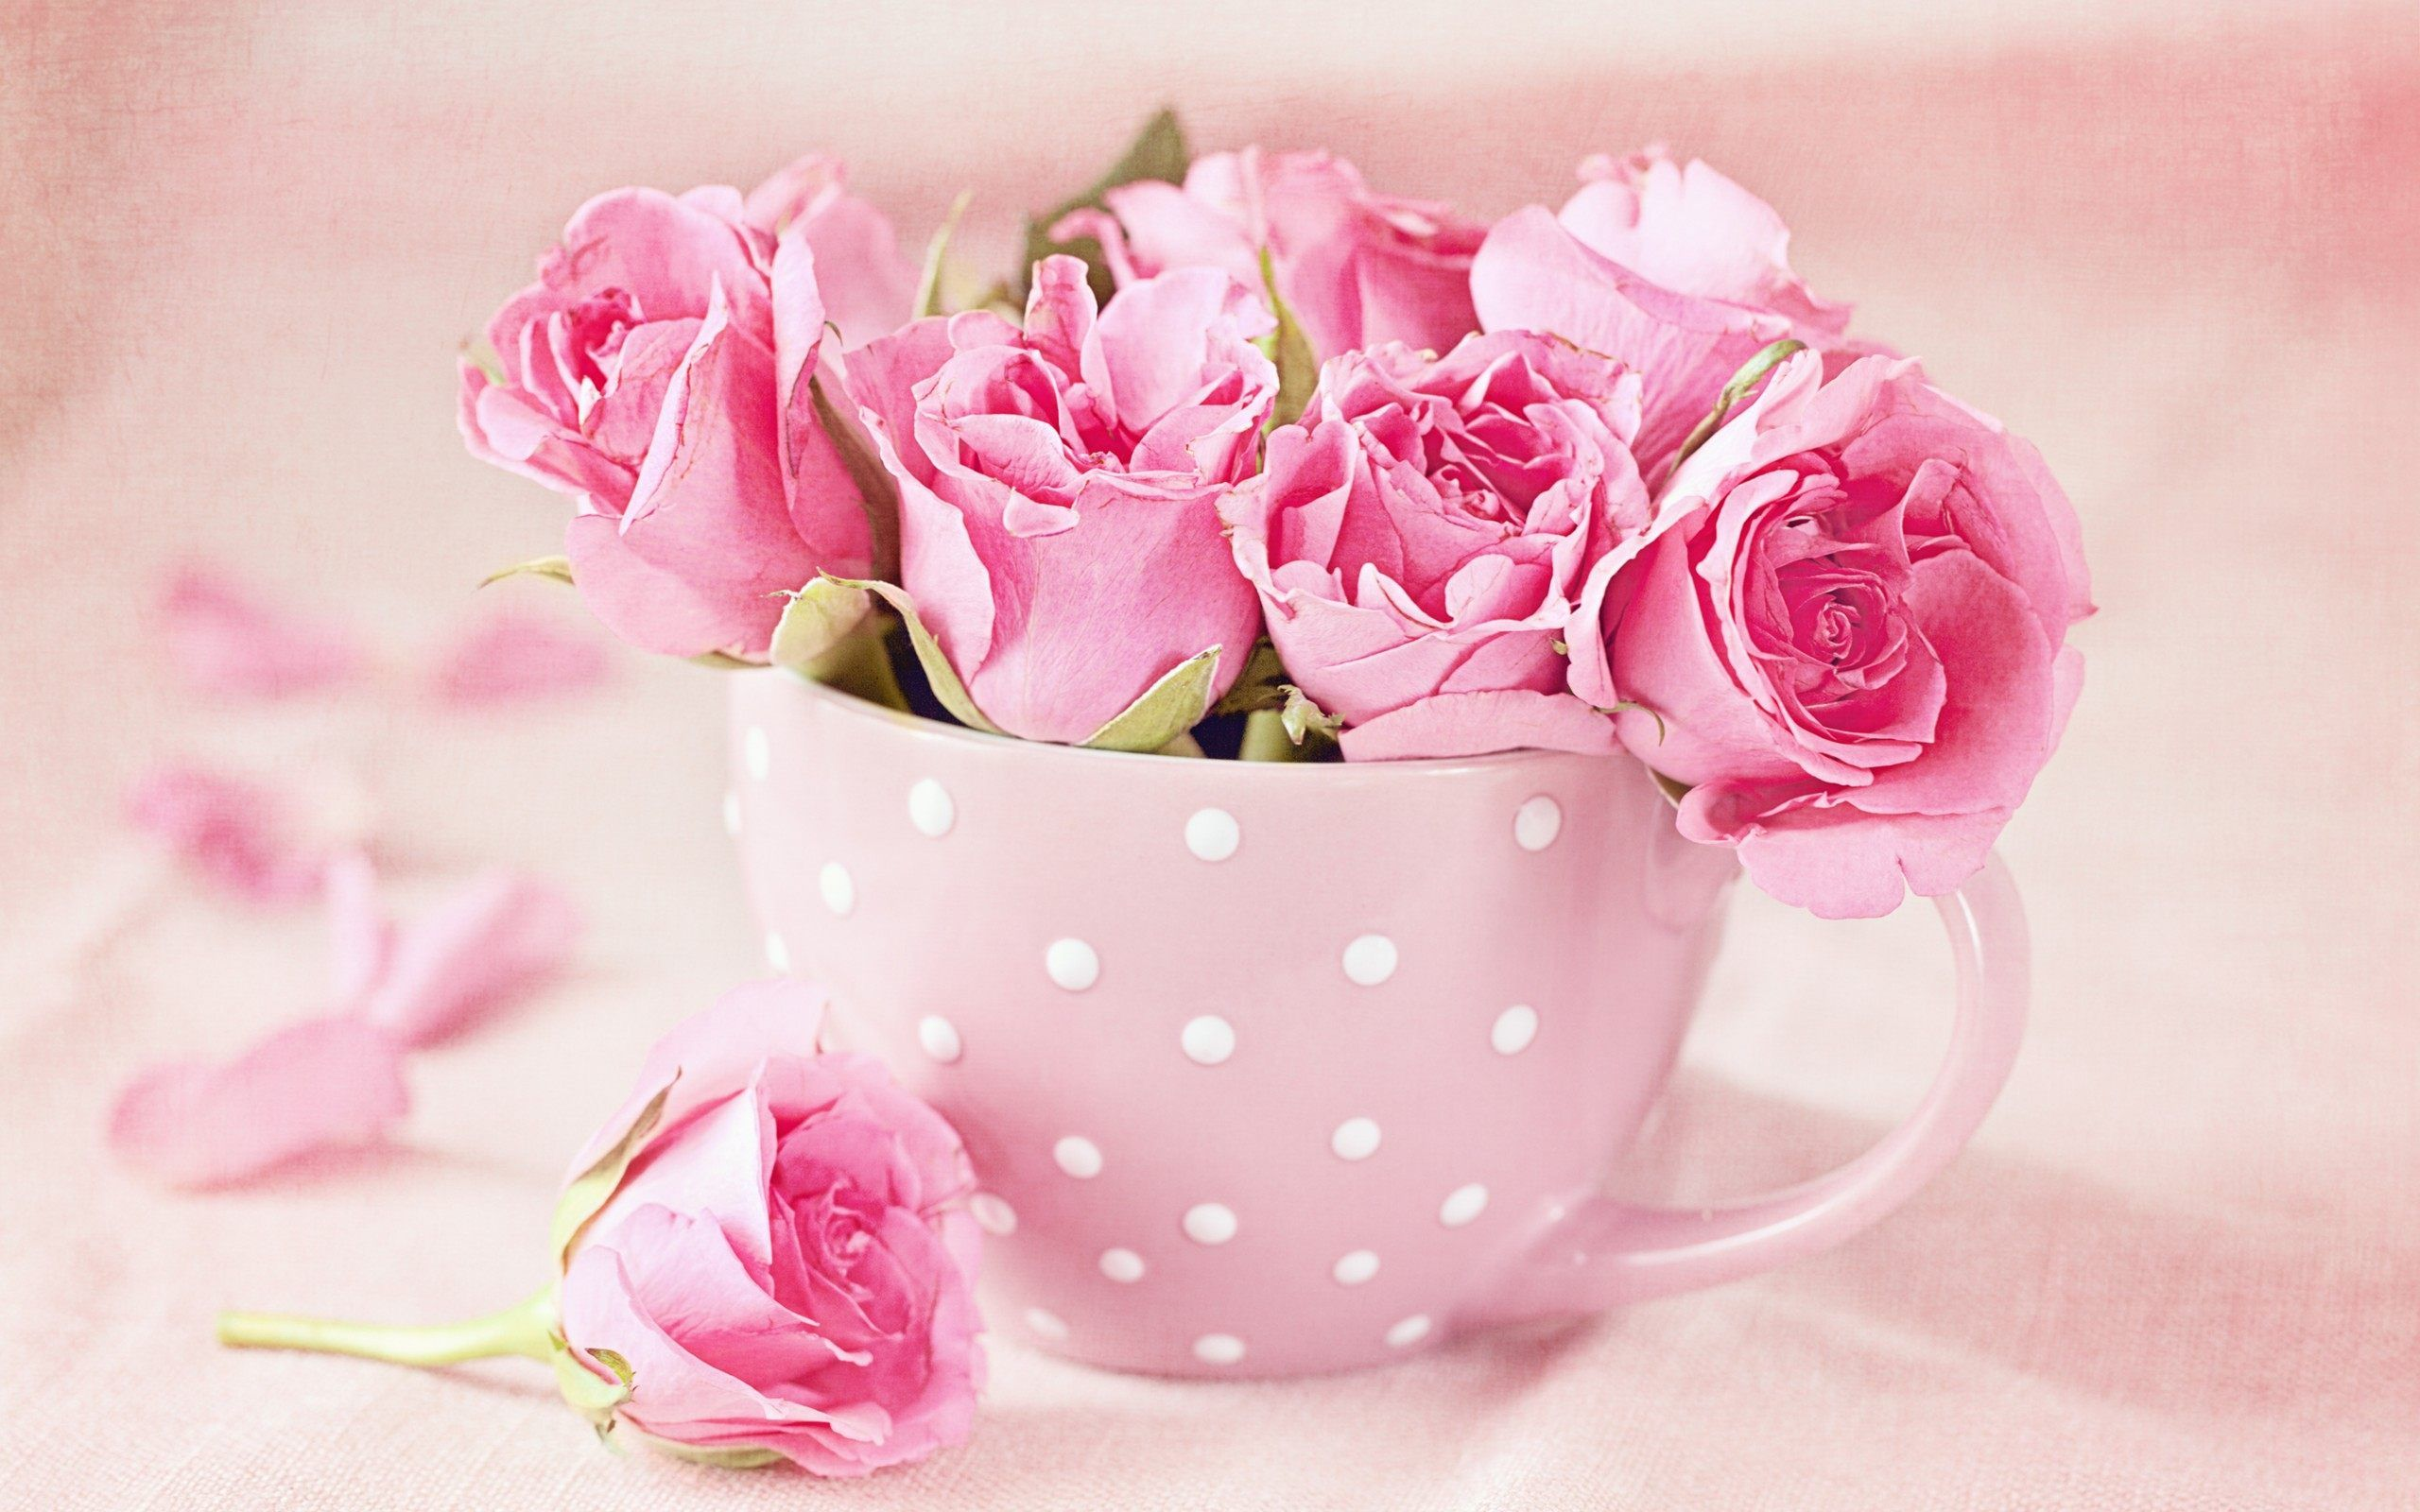 Pin By Ratmissing Coolheart On Ff Pinterest Rose Wallpaper 3d